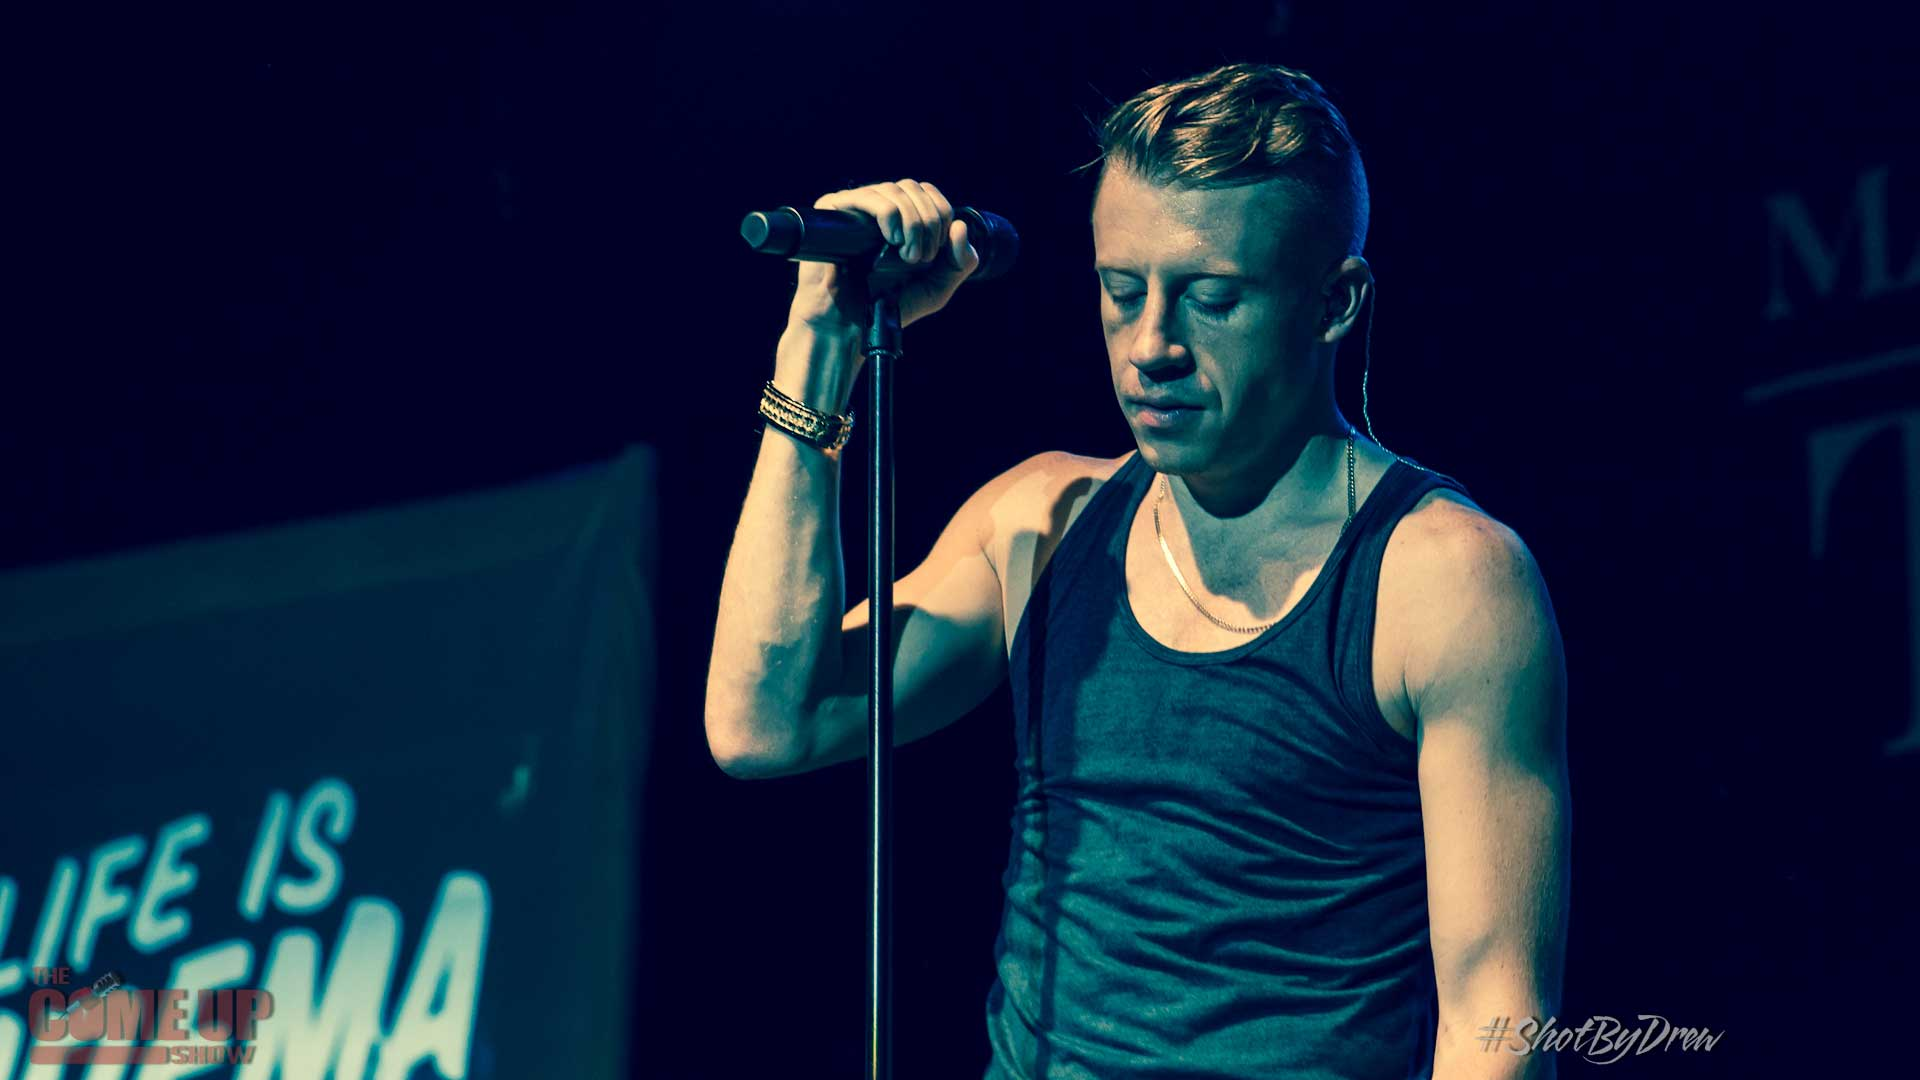 macklemore and his substance abuse